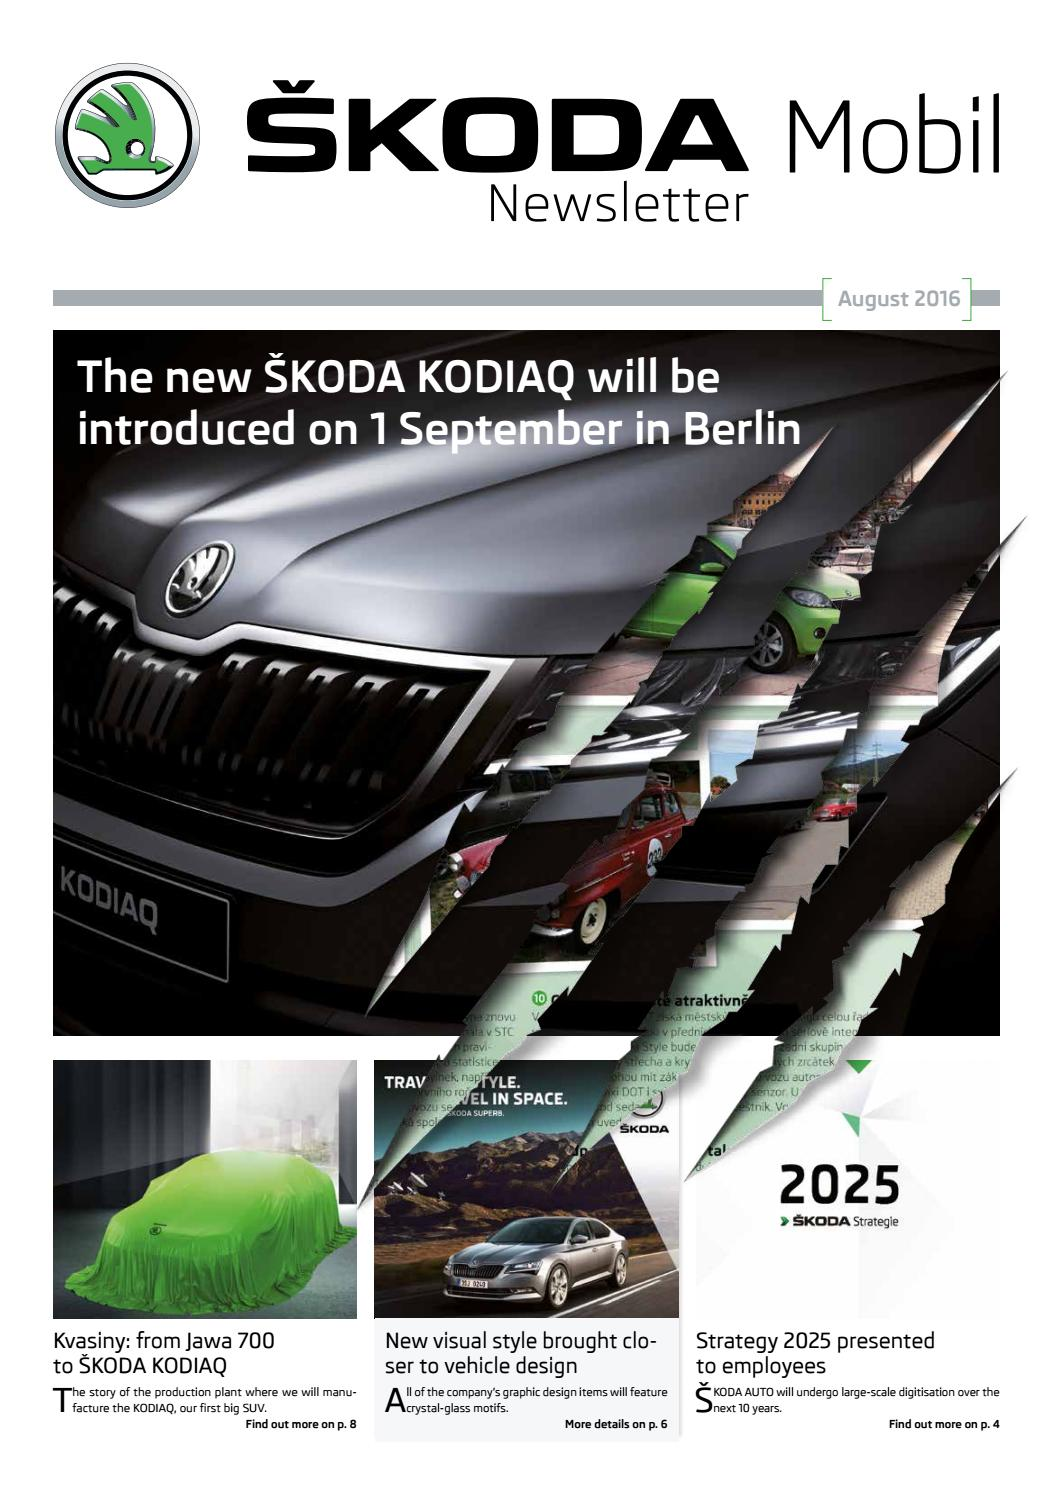 SKODA Mobil Newsletter by Tomas Novotny issuu